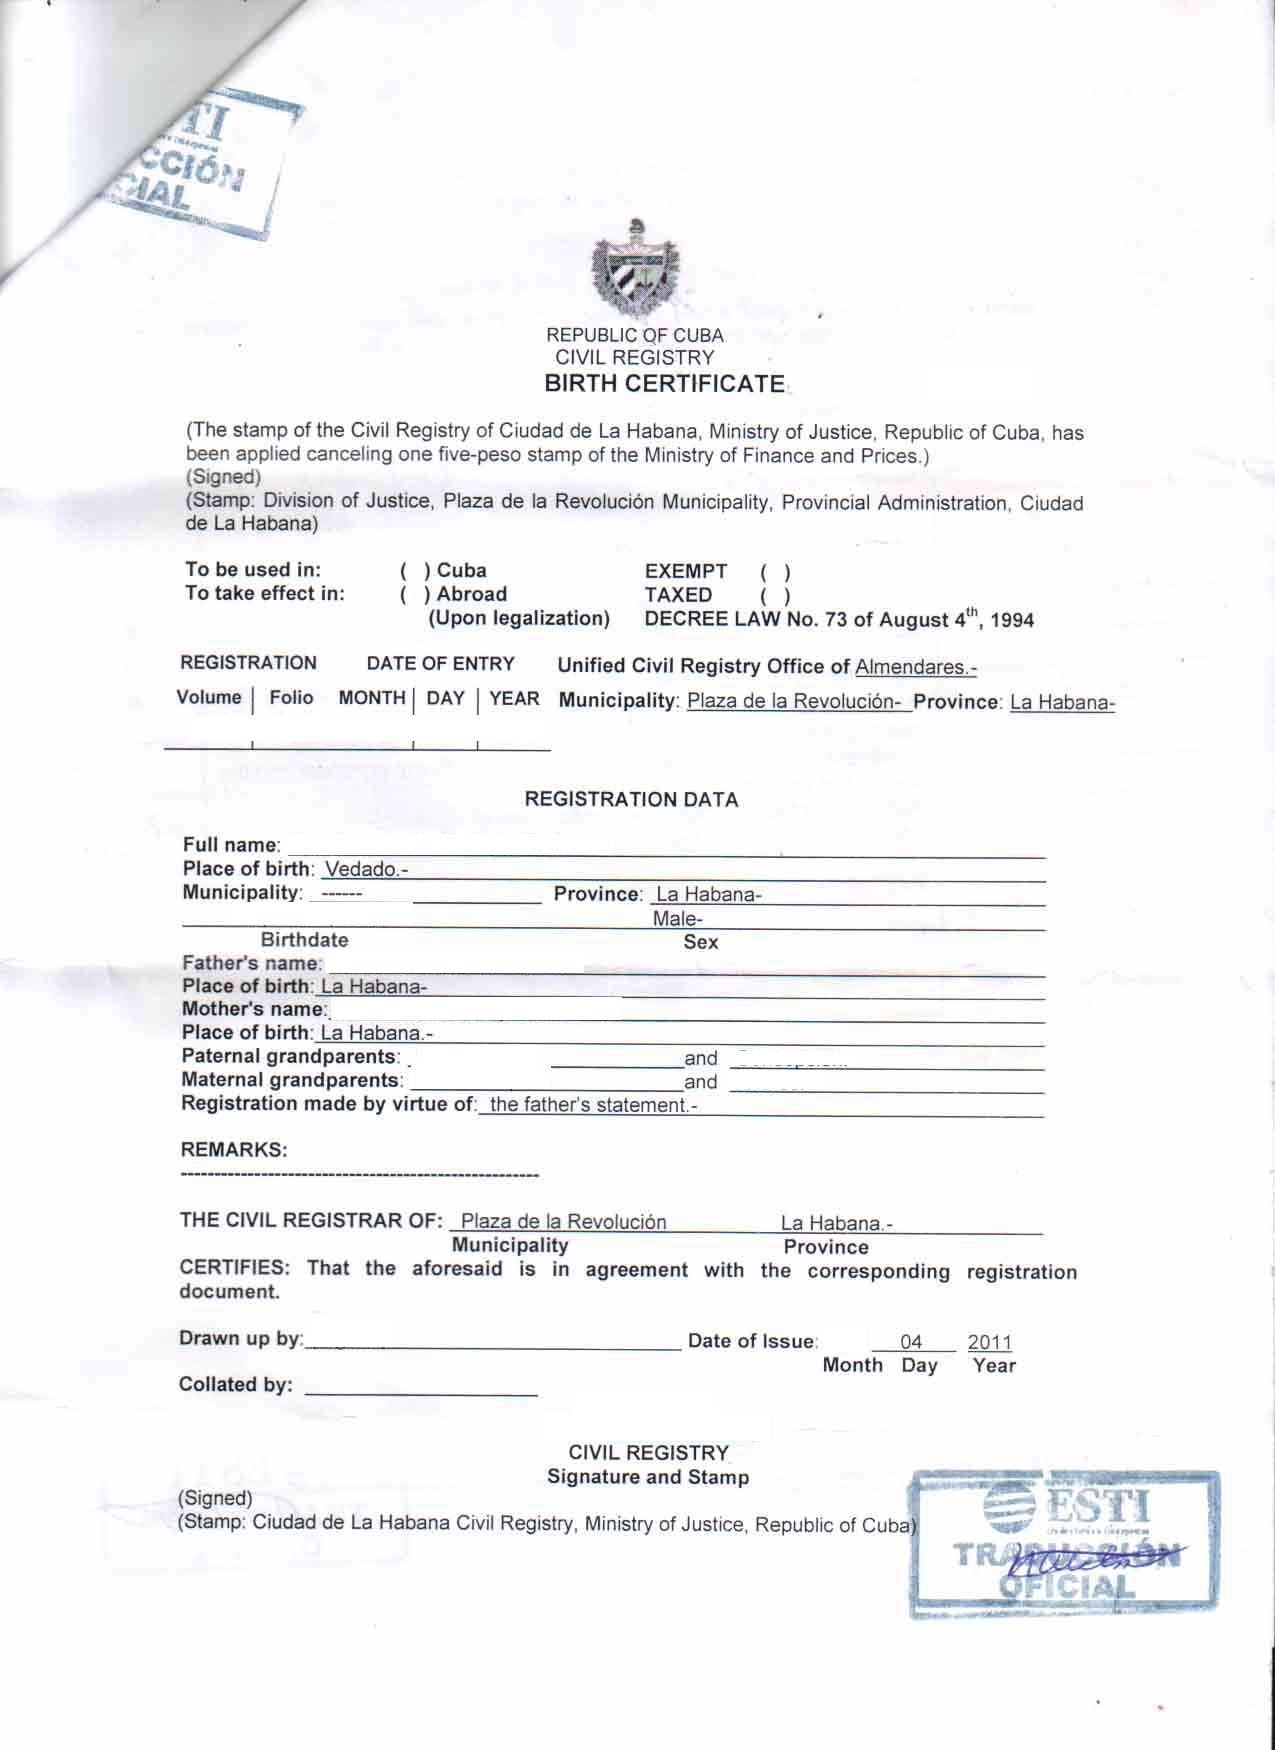 Marriage Certificate Translation – Translation of Marriage